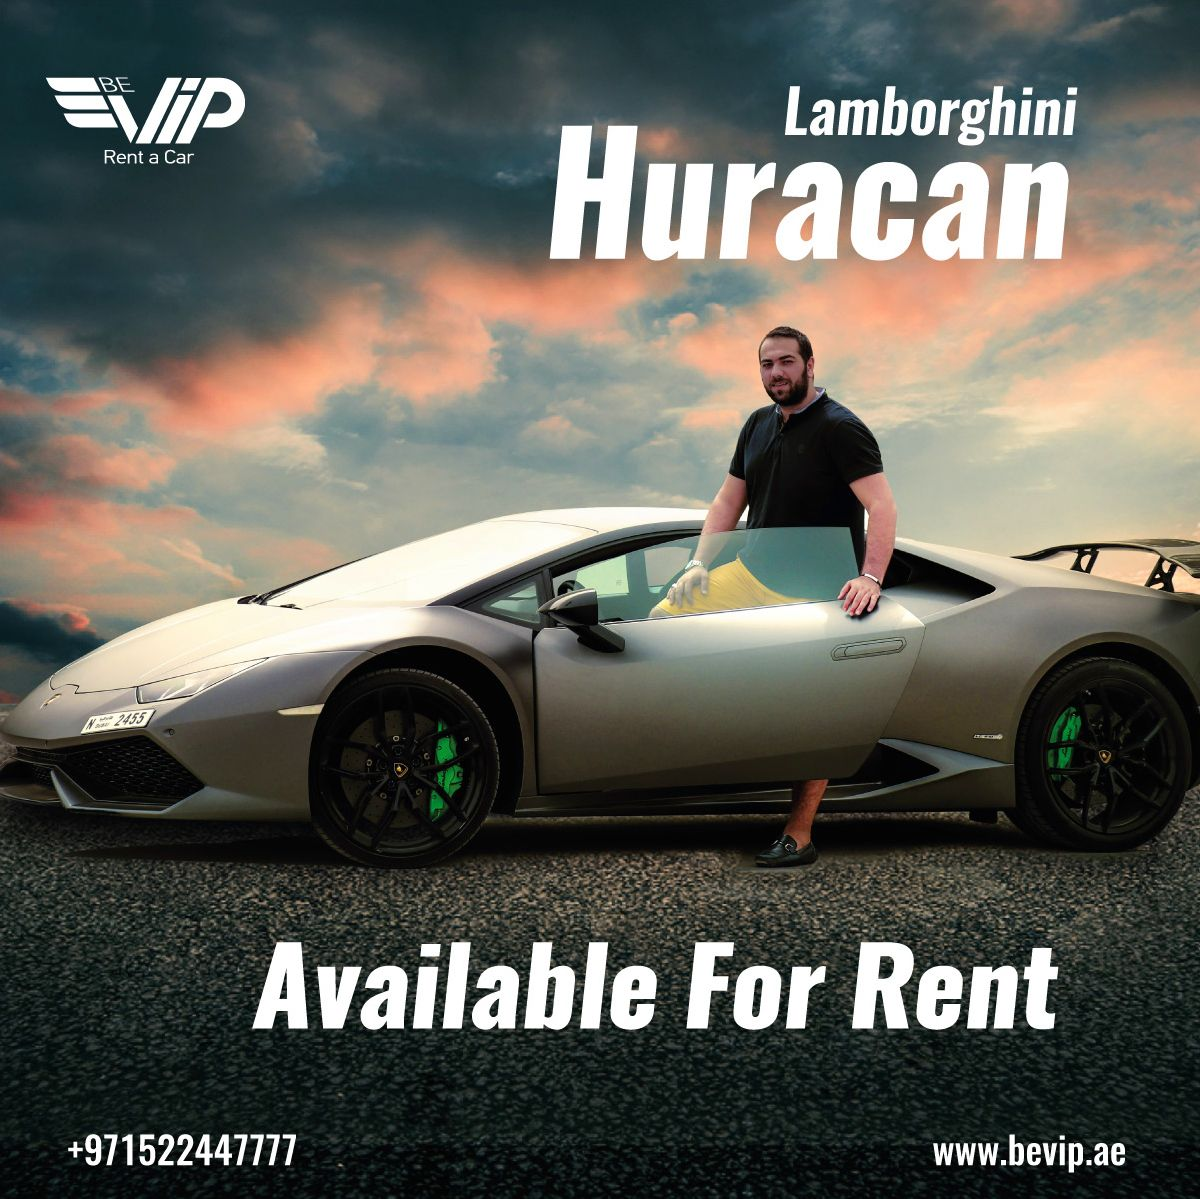 Be Vip Rent A Car In Dubai Offers The Most Exclusive Luxury And Sports Cars In Dubai Call 00971522447777 Sports Car Rental Car Rental Rent A Car